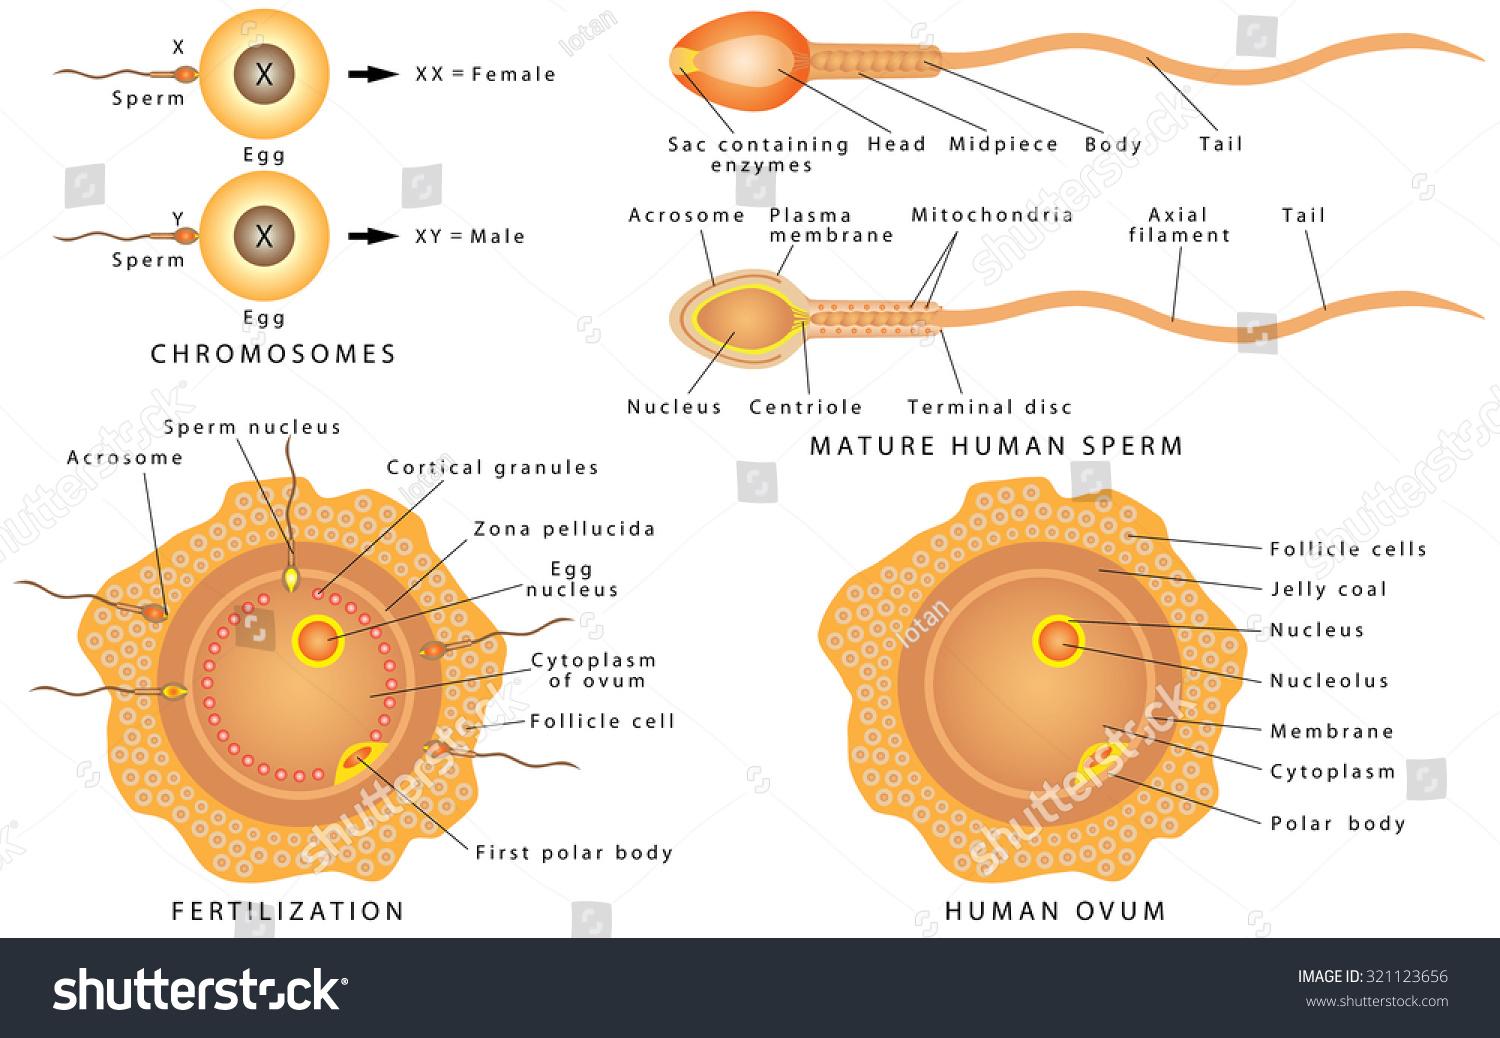 Human sperm cells and egg cells are haploid, - OpenS